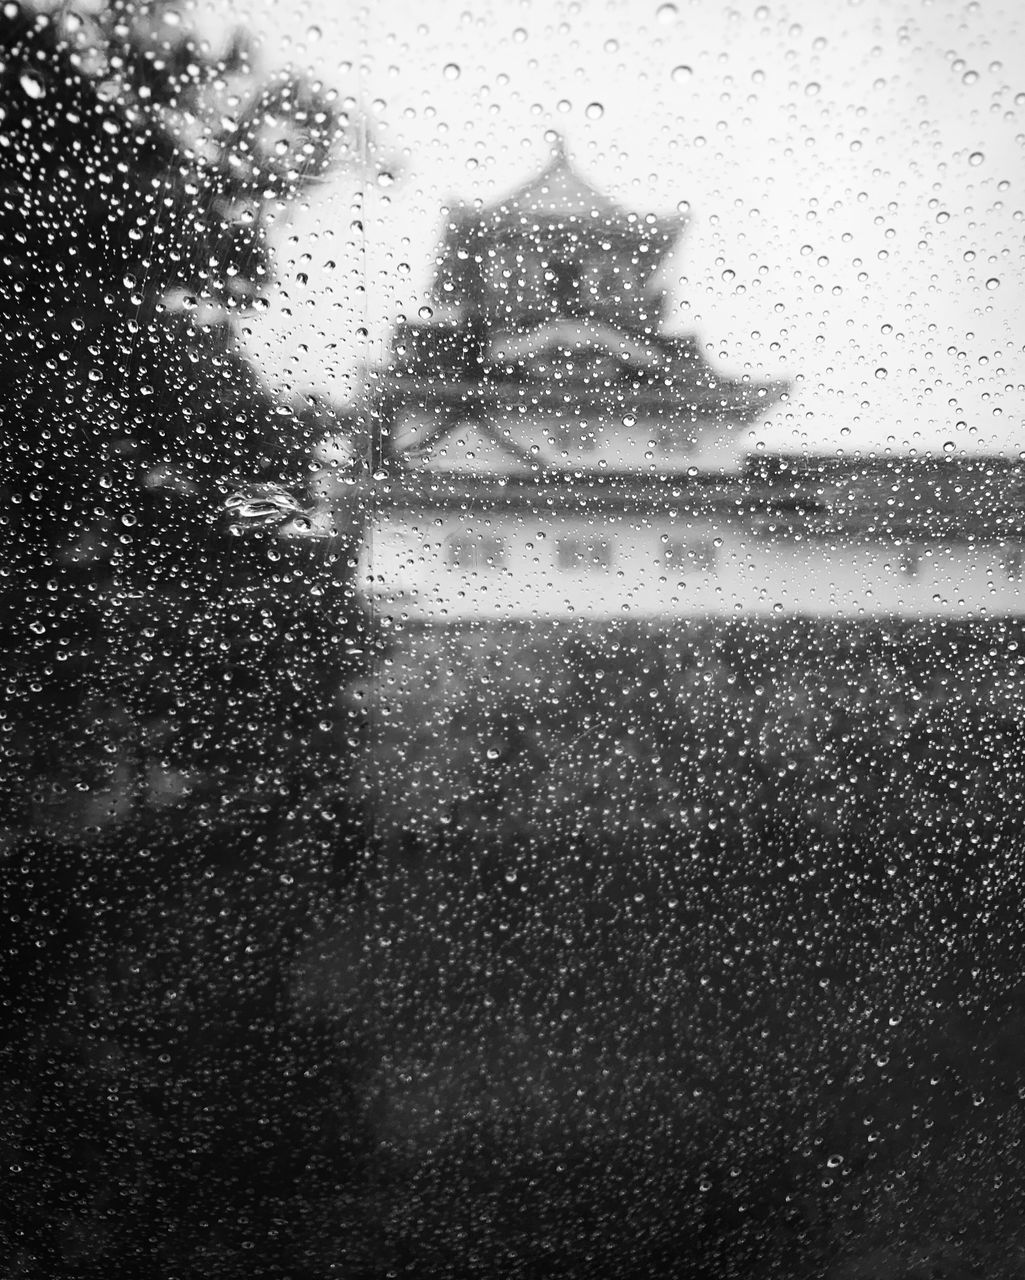 window, rain, drop, wet, glass - material, weather, rainy season, looking through window, raindrop, water, full frame, condensation, windshield, backgrounds, close-up, land vehicle, day, indoors, no people, snowing, sky